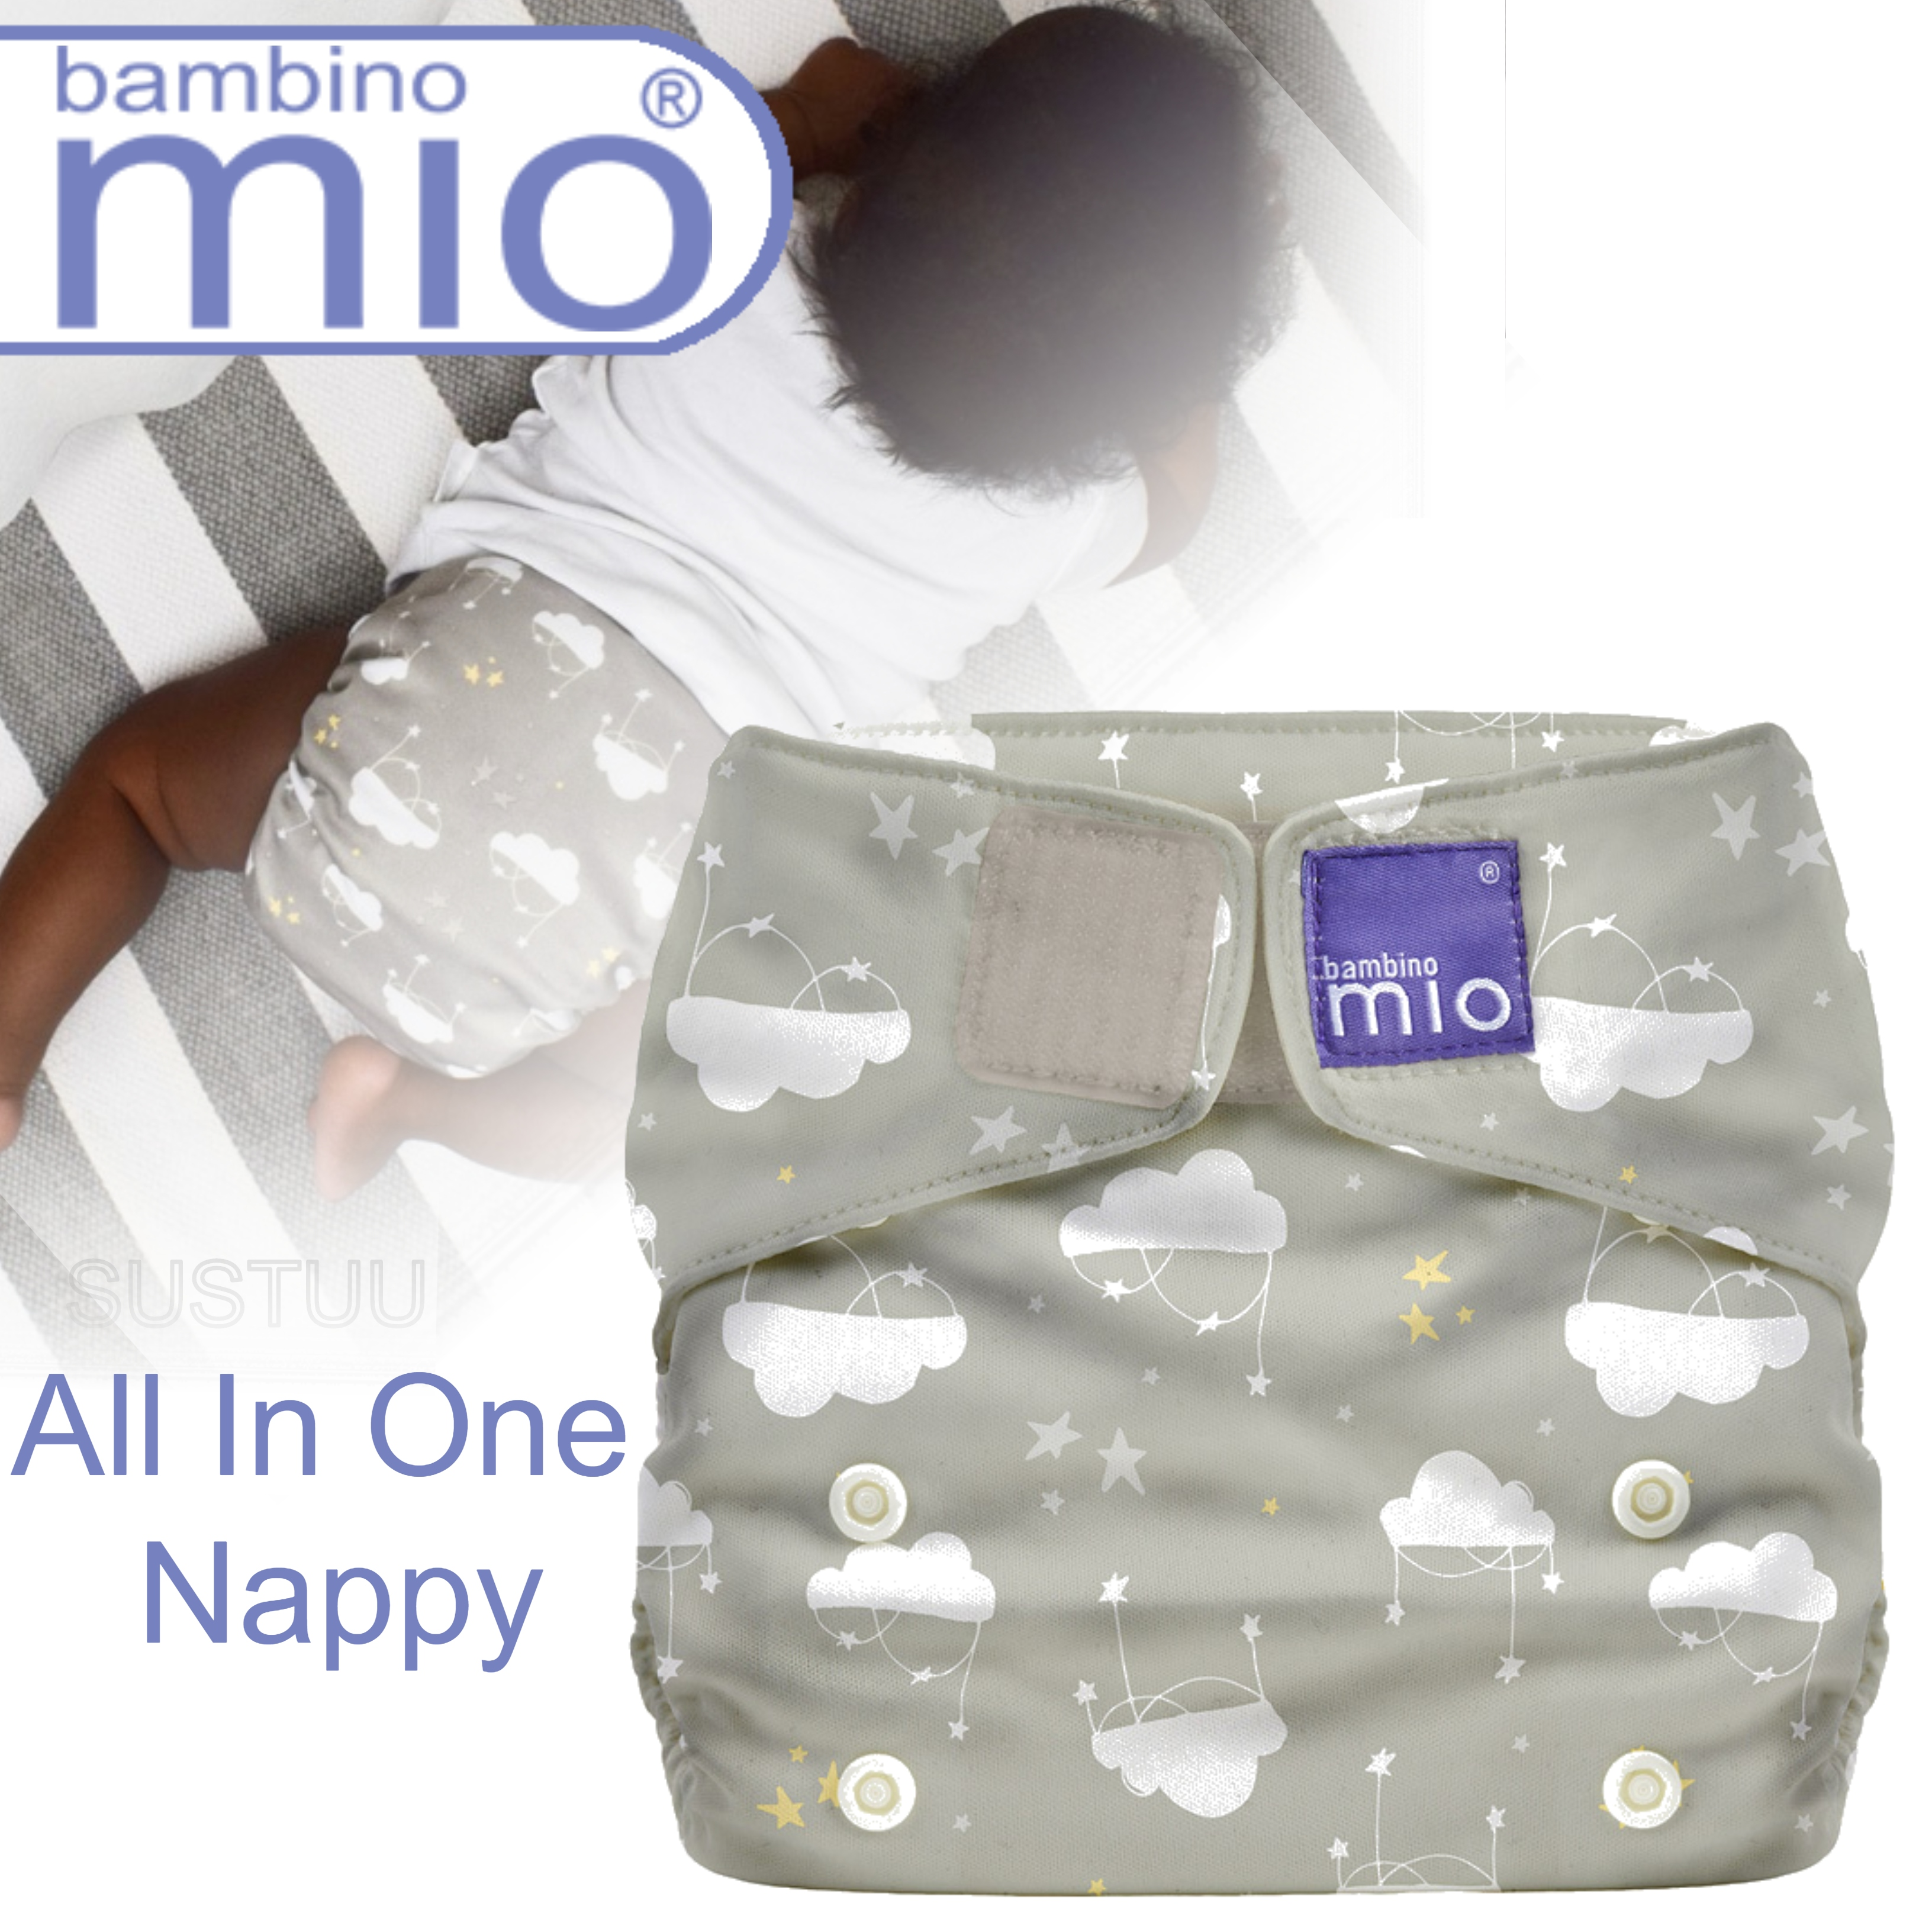 Bambino Mio Miosolo All In One Nappy|Polyester|For Baby No Moisturiser|Cloud Nine